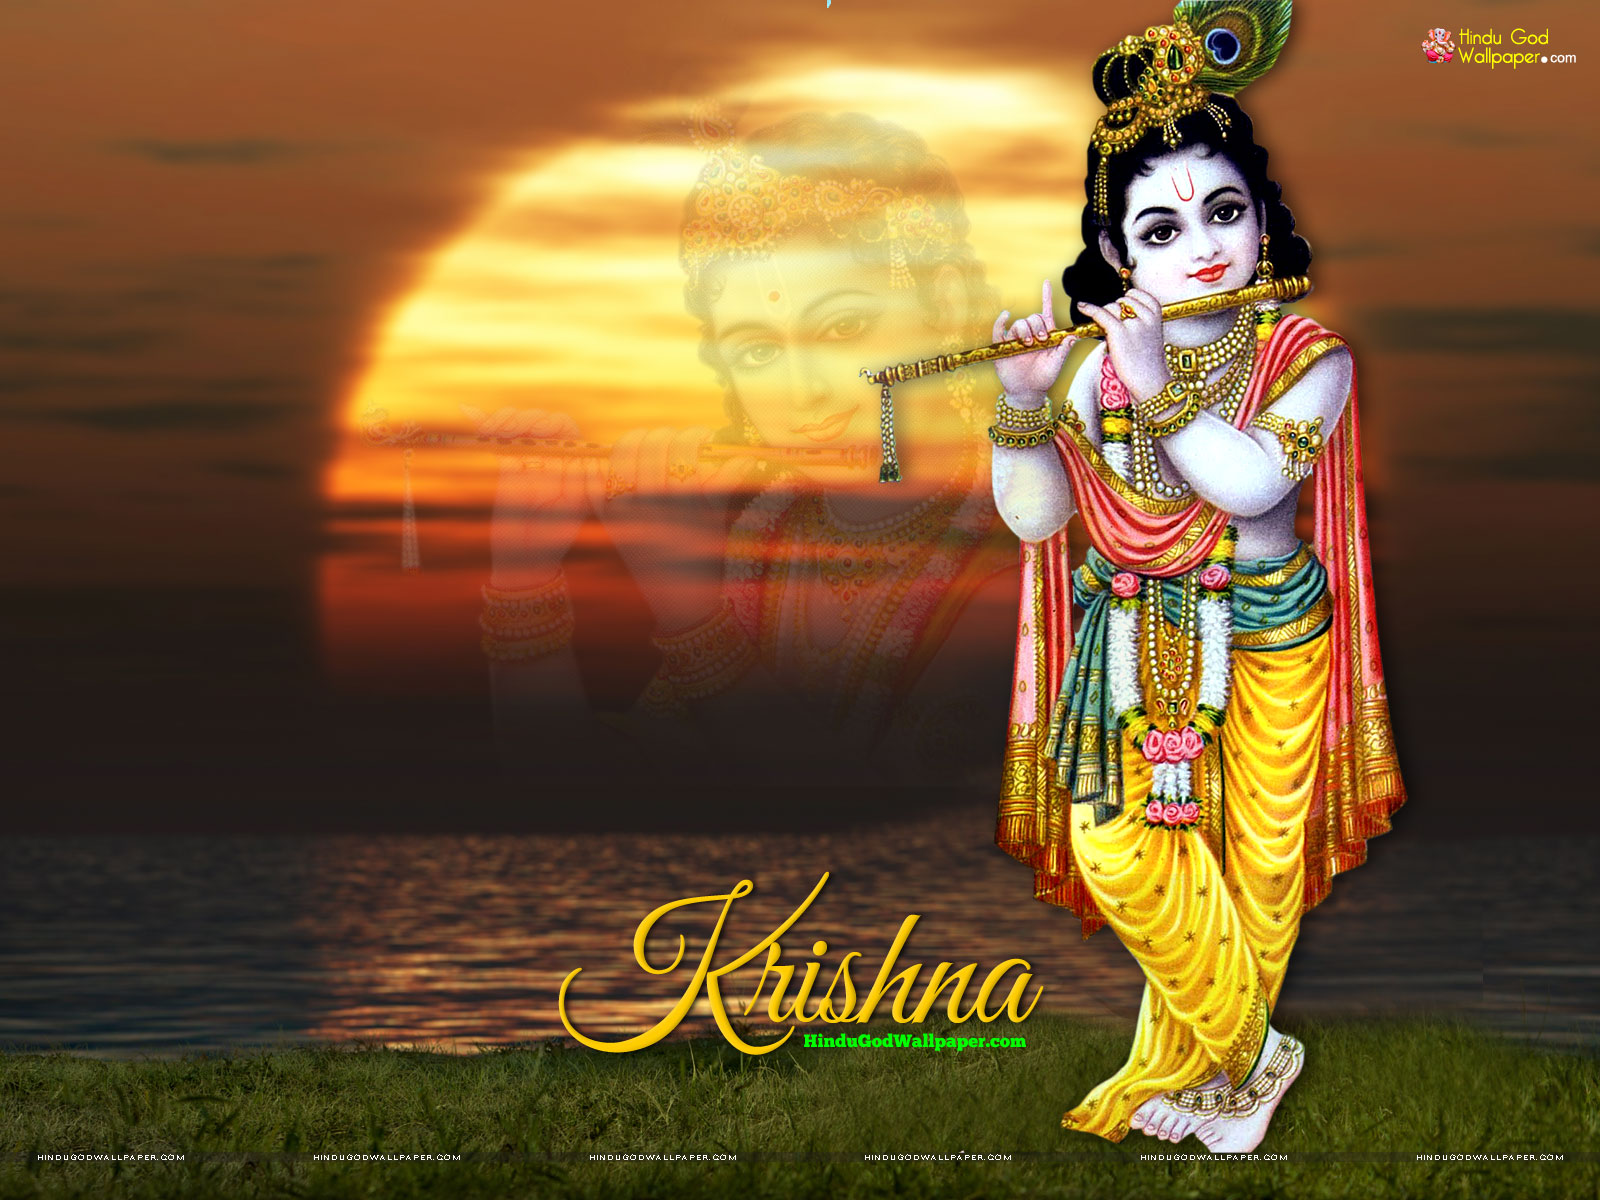 Bal Krishna Yashoda Wallpapers & Images Free Download